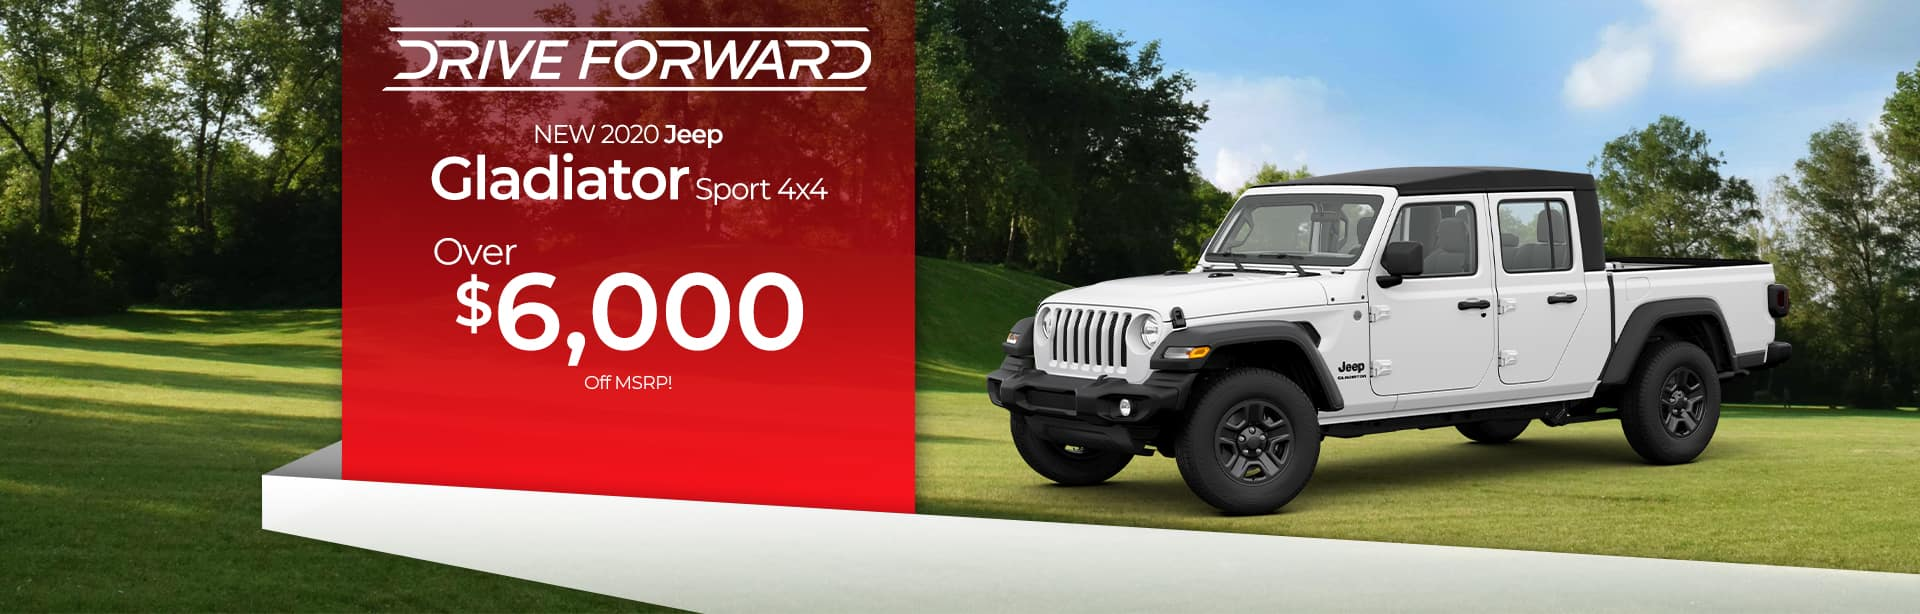 Save on a Jeep Gladiator with up to $6,000 off near Kendallville, Indiana